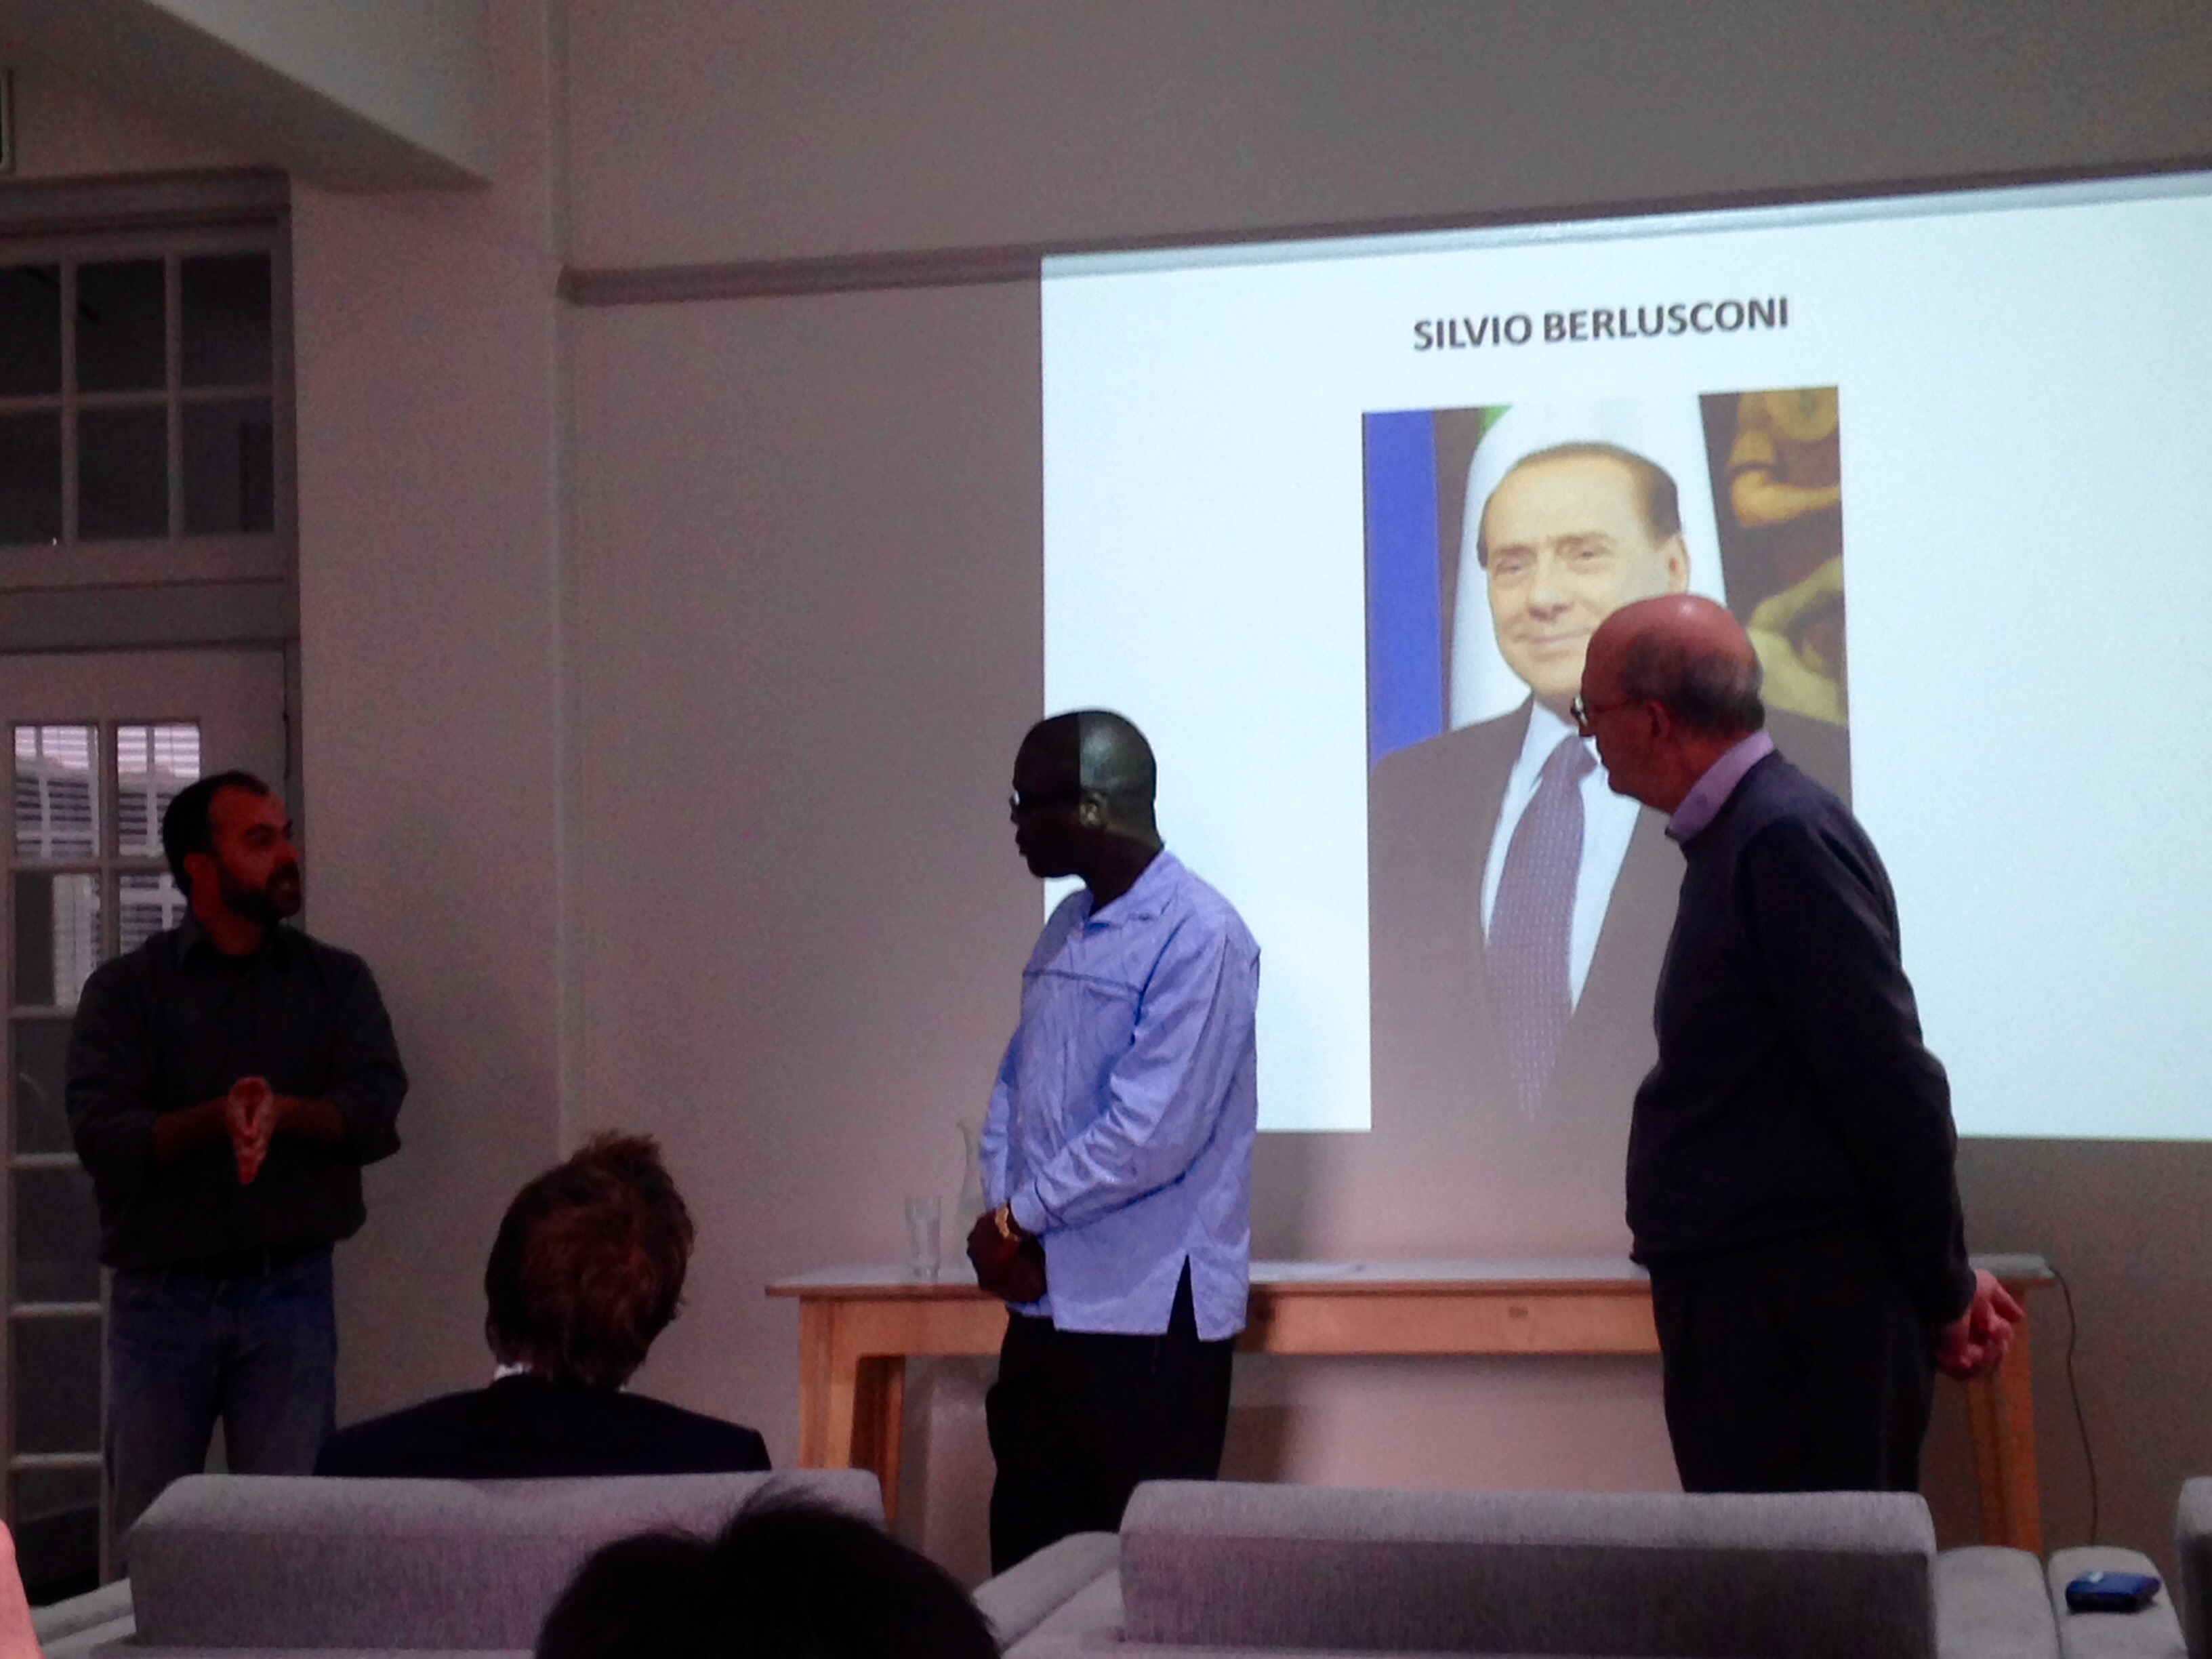 Prince Mashele and Prof. Roberto D'Alimonte discussing Burlesconi.